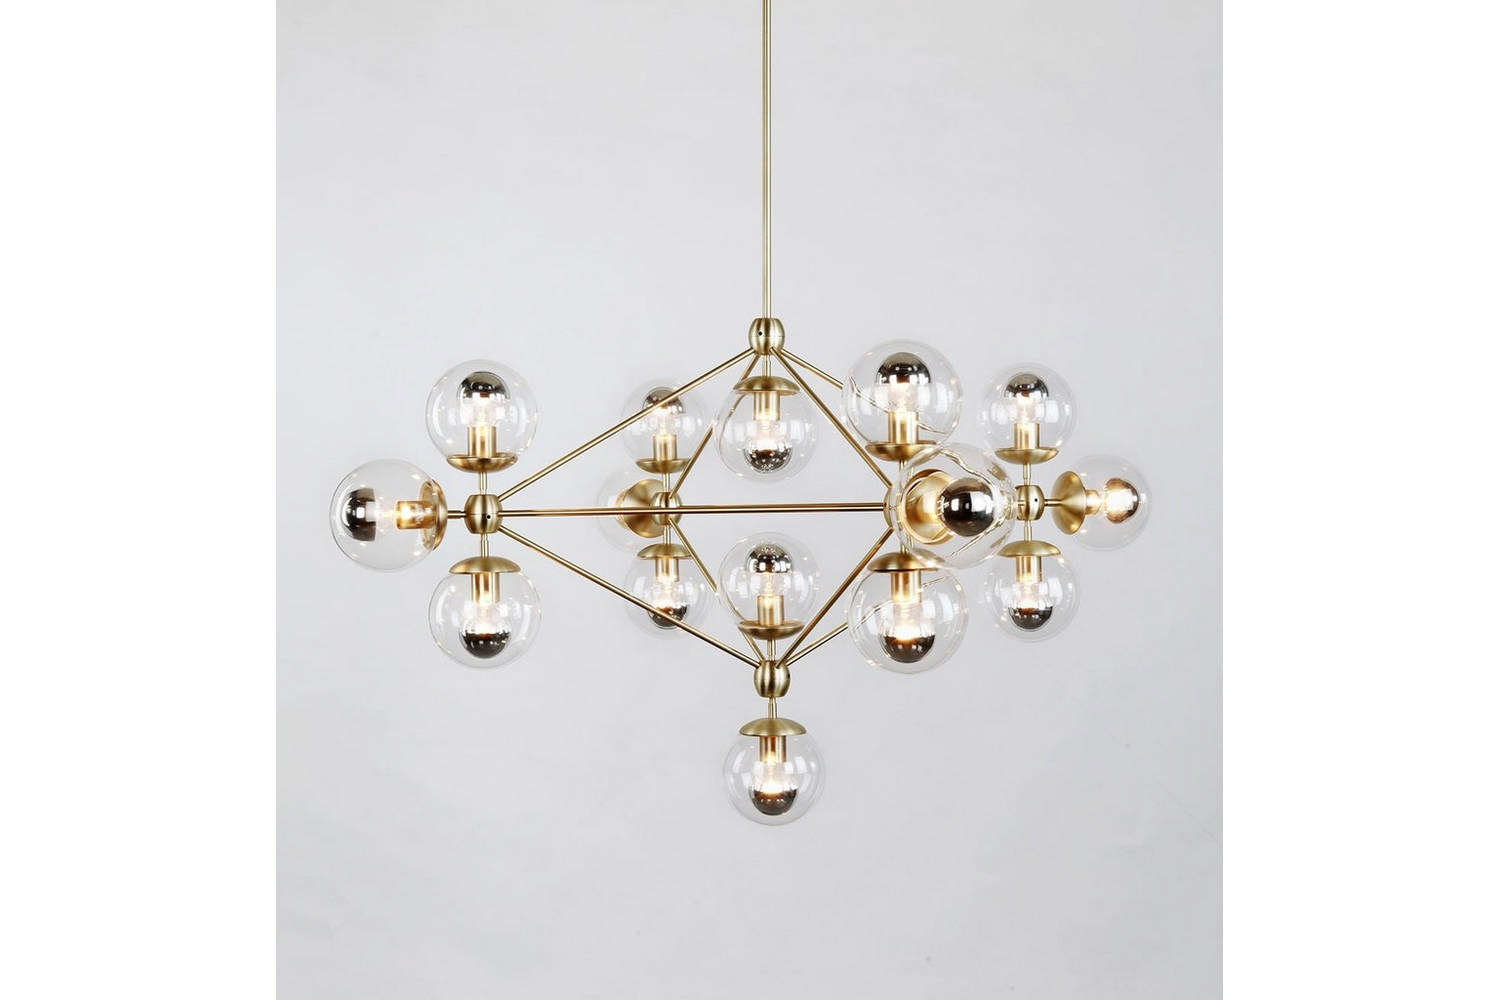 Modo Chandelier - 4 Sided 15 Globes by Jason Miller for Roll & Hill